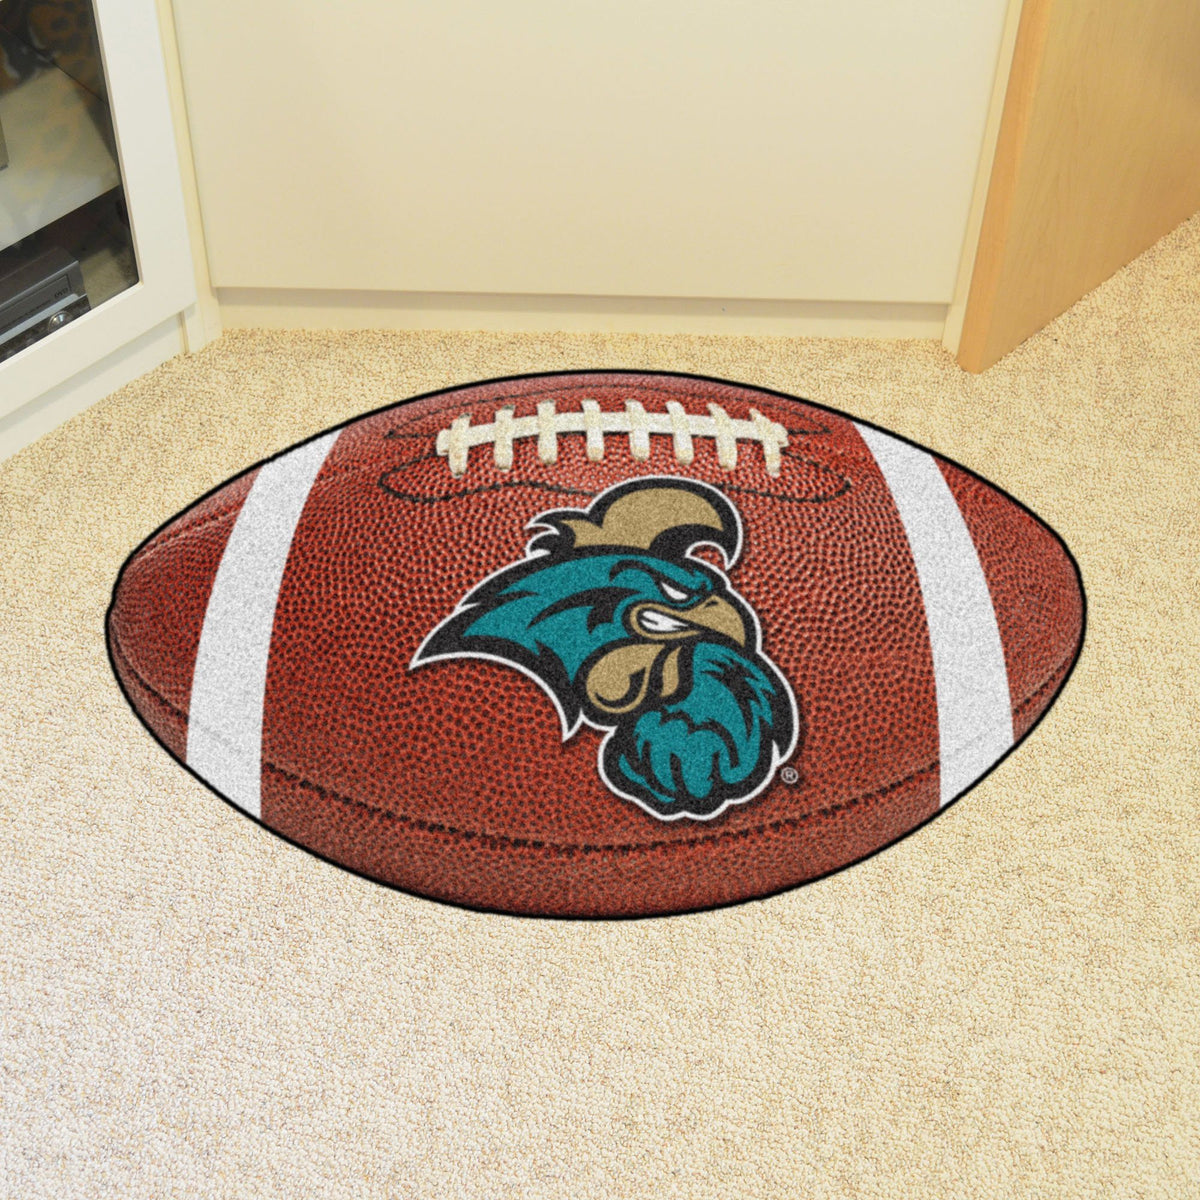 Collegiate - Football Mat: A - K Collegiate Mats, Rectangular Mats, Football Mat, Collegiate, Home Fan Mats Coastal Carolina